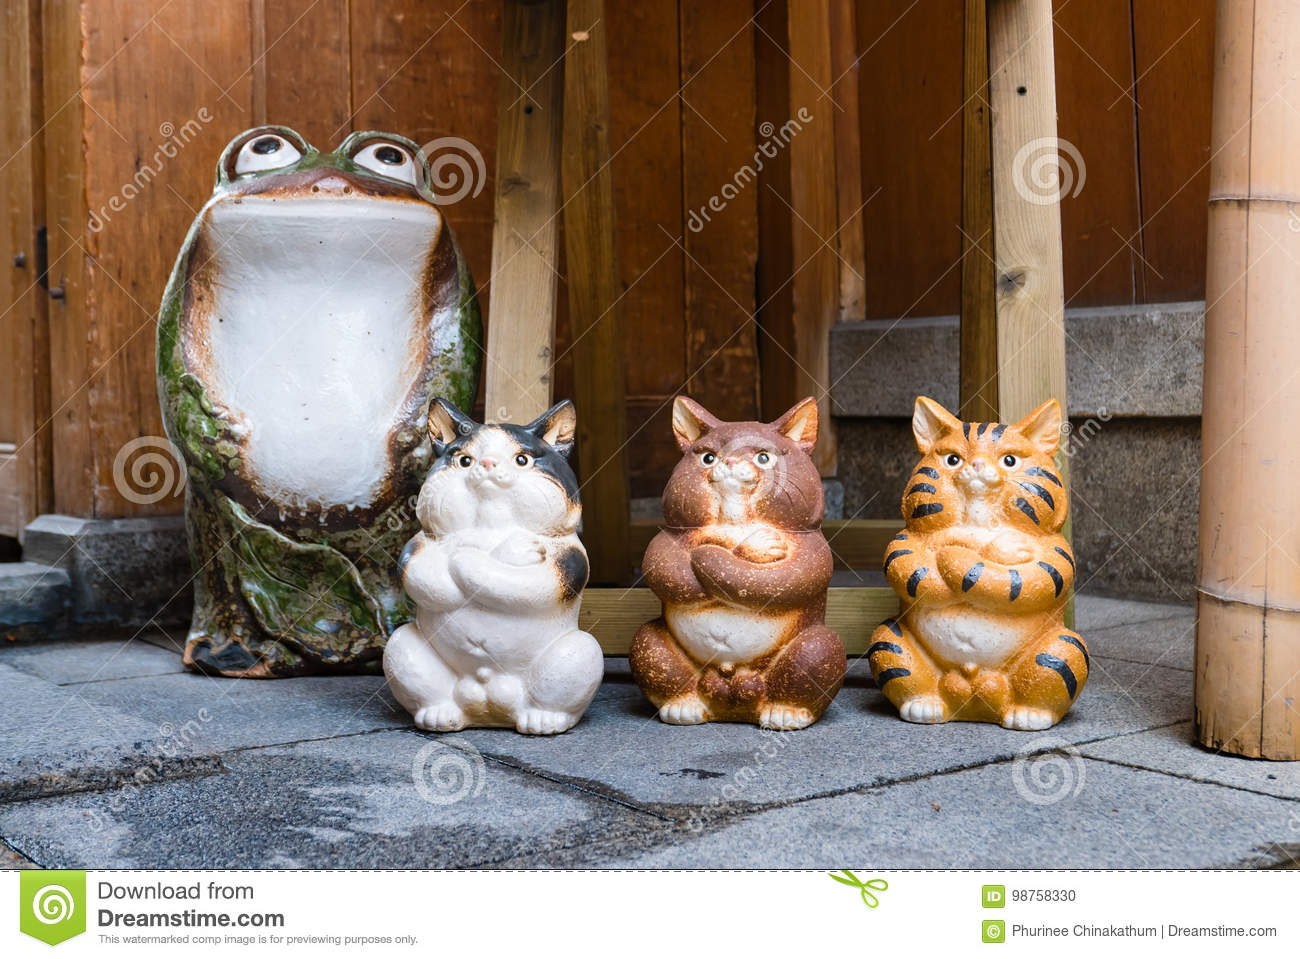 Frog and cats statue stock photo. Image of concept, green - 98758330